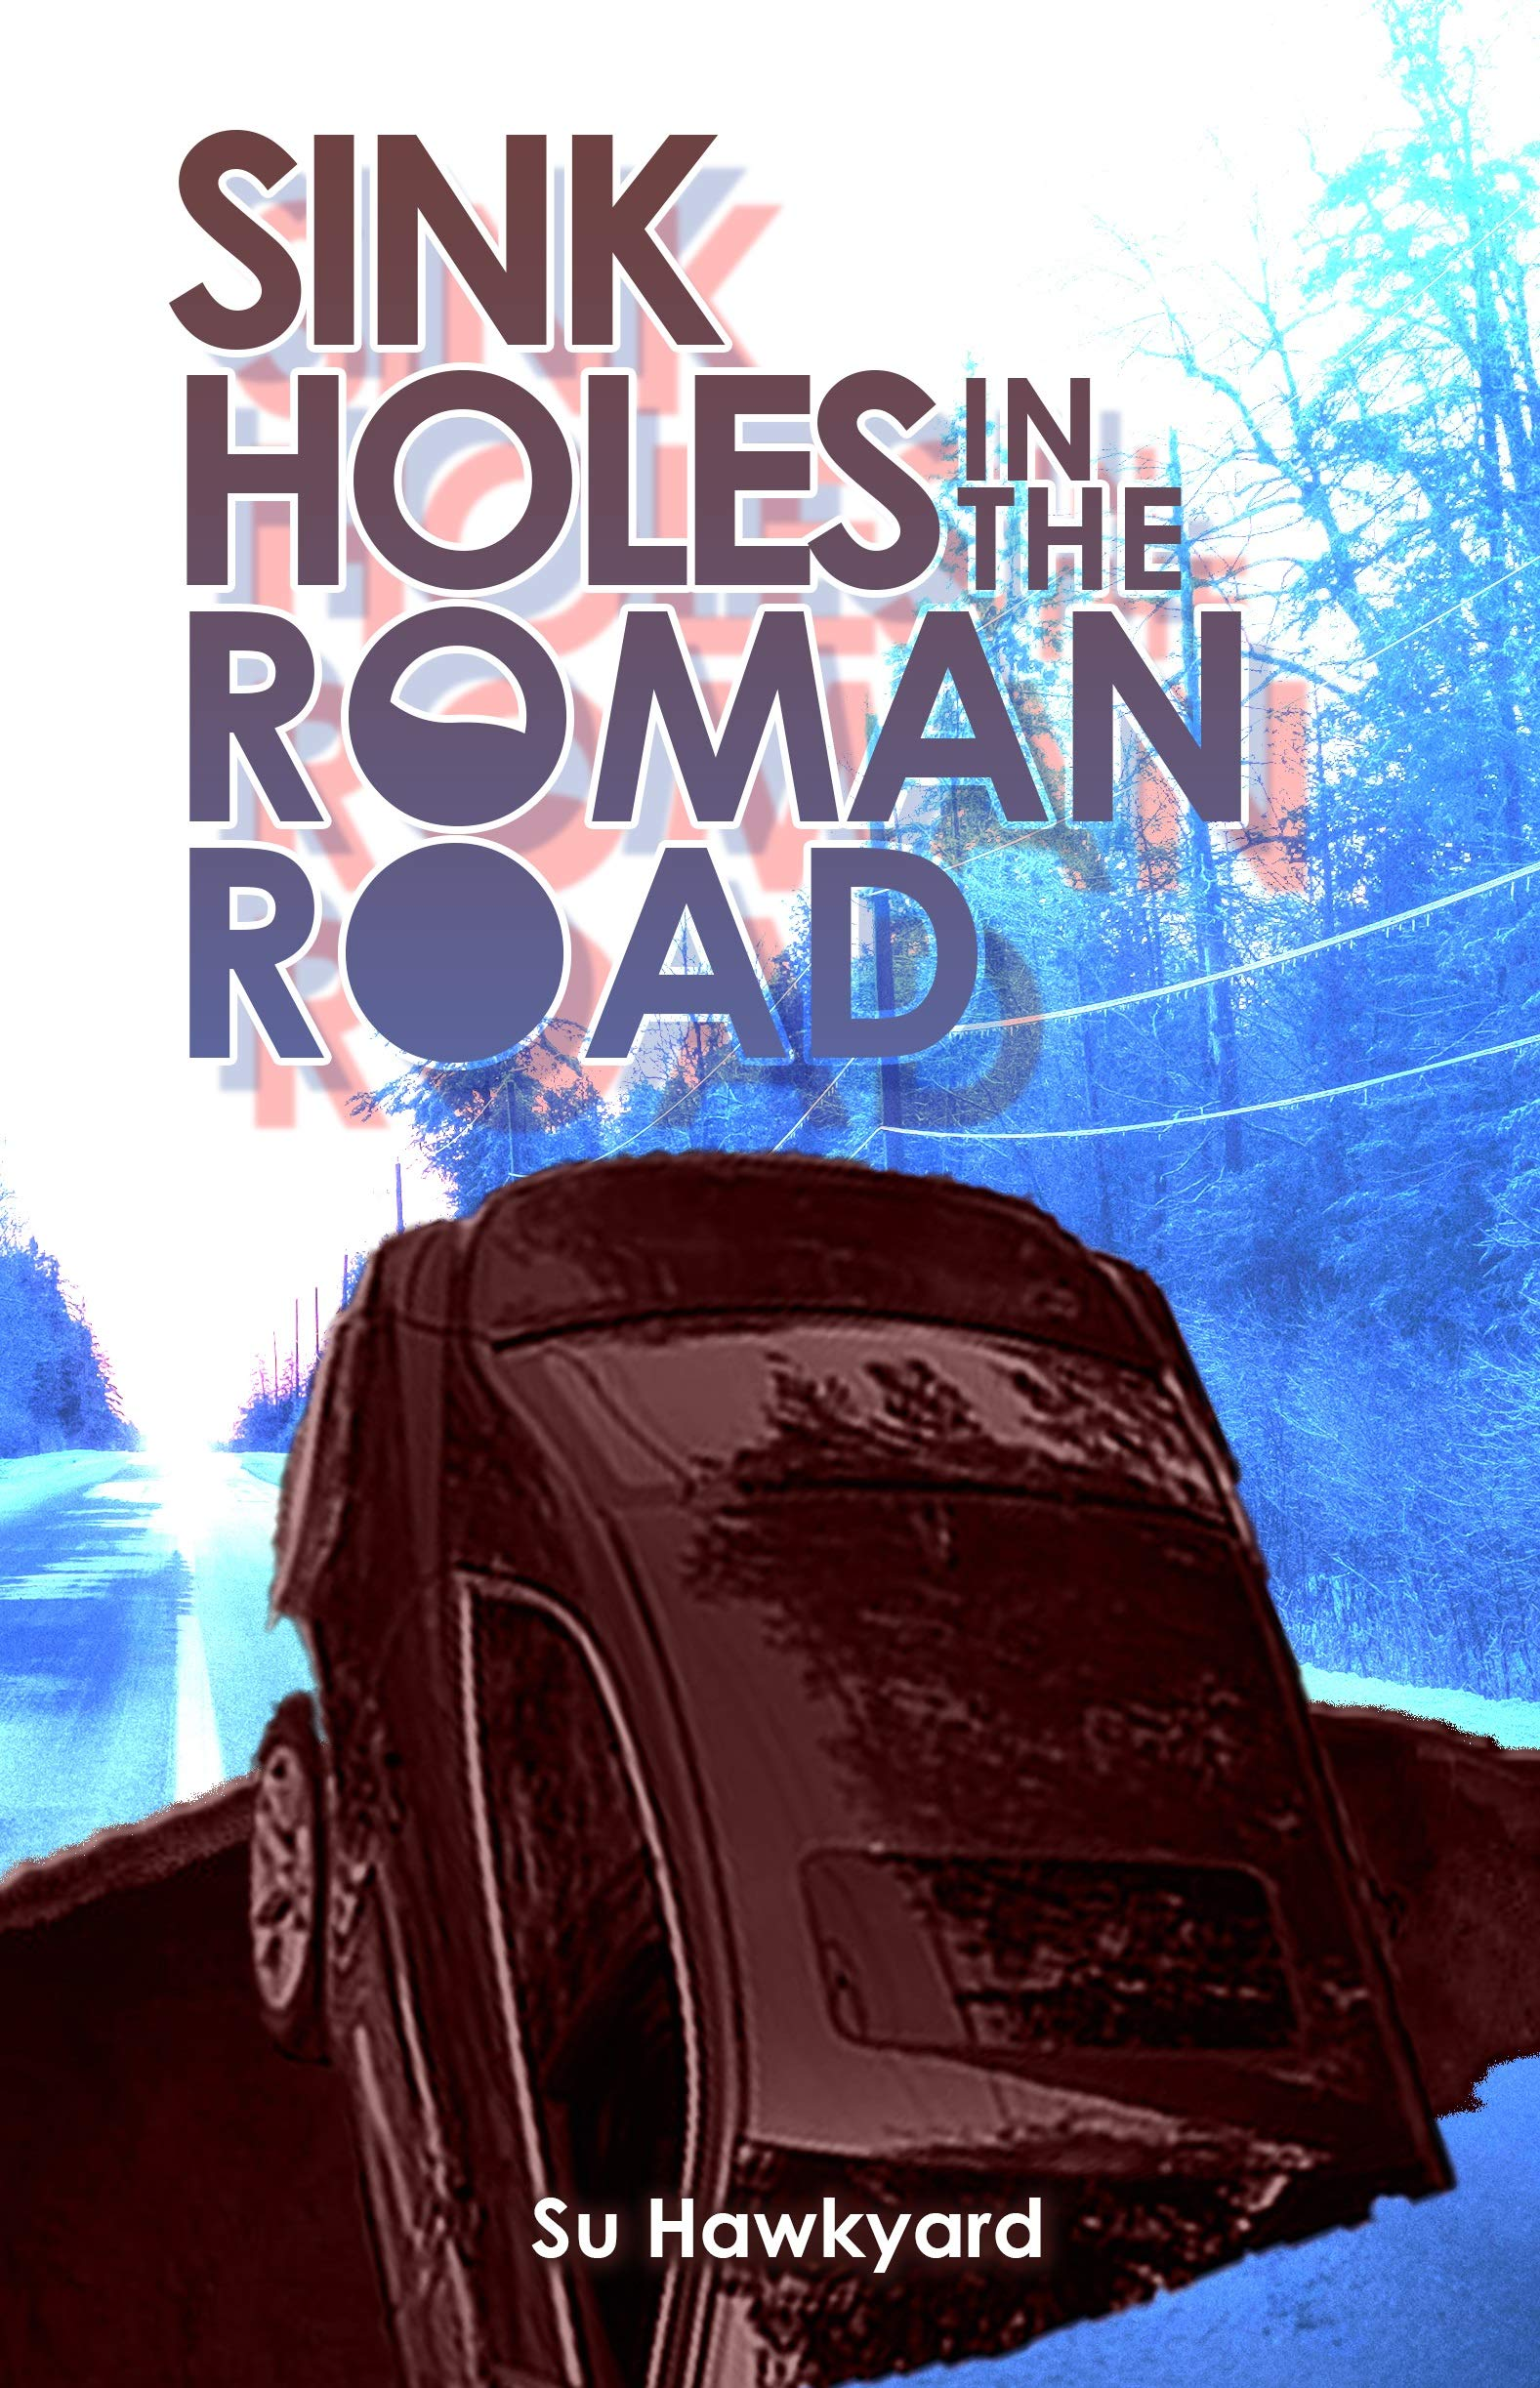 Sinkholes in the Roman Road: A journey through the Book of Romans…avoiding the hazards to an abundant Christian life